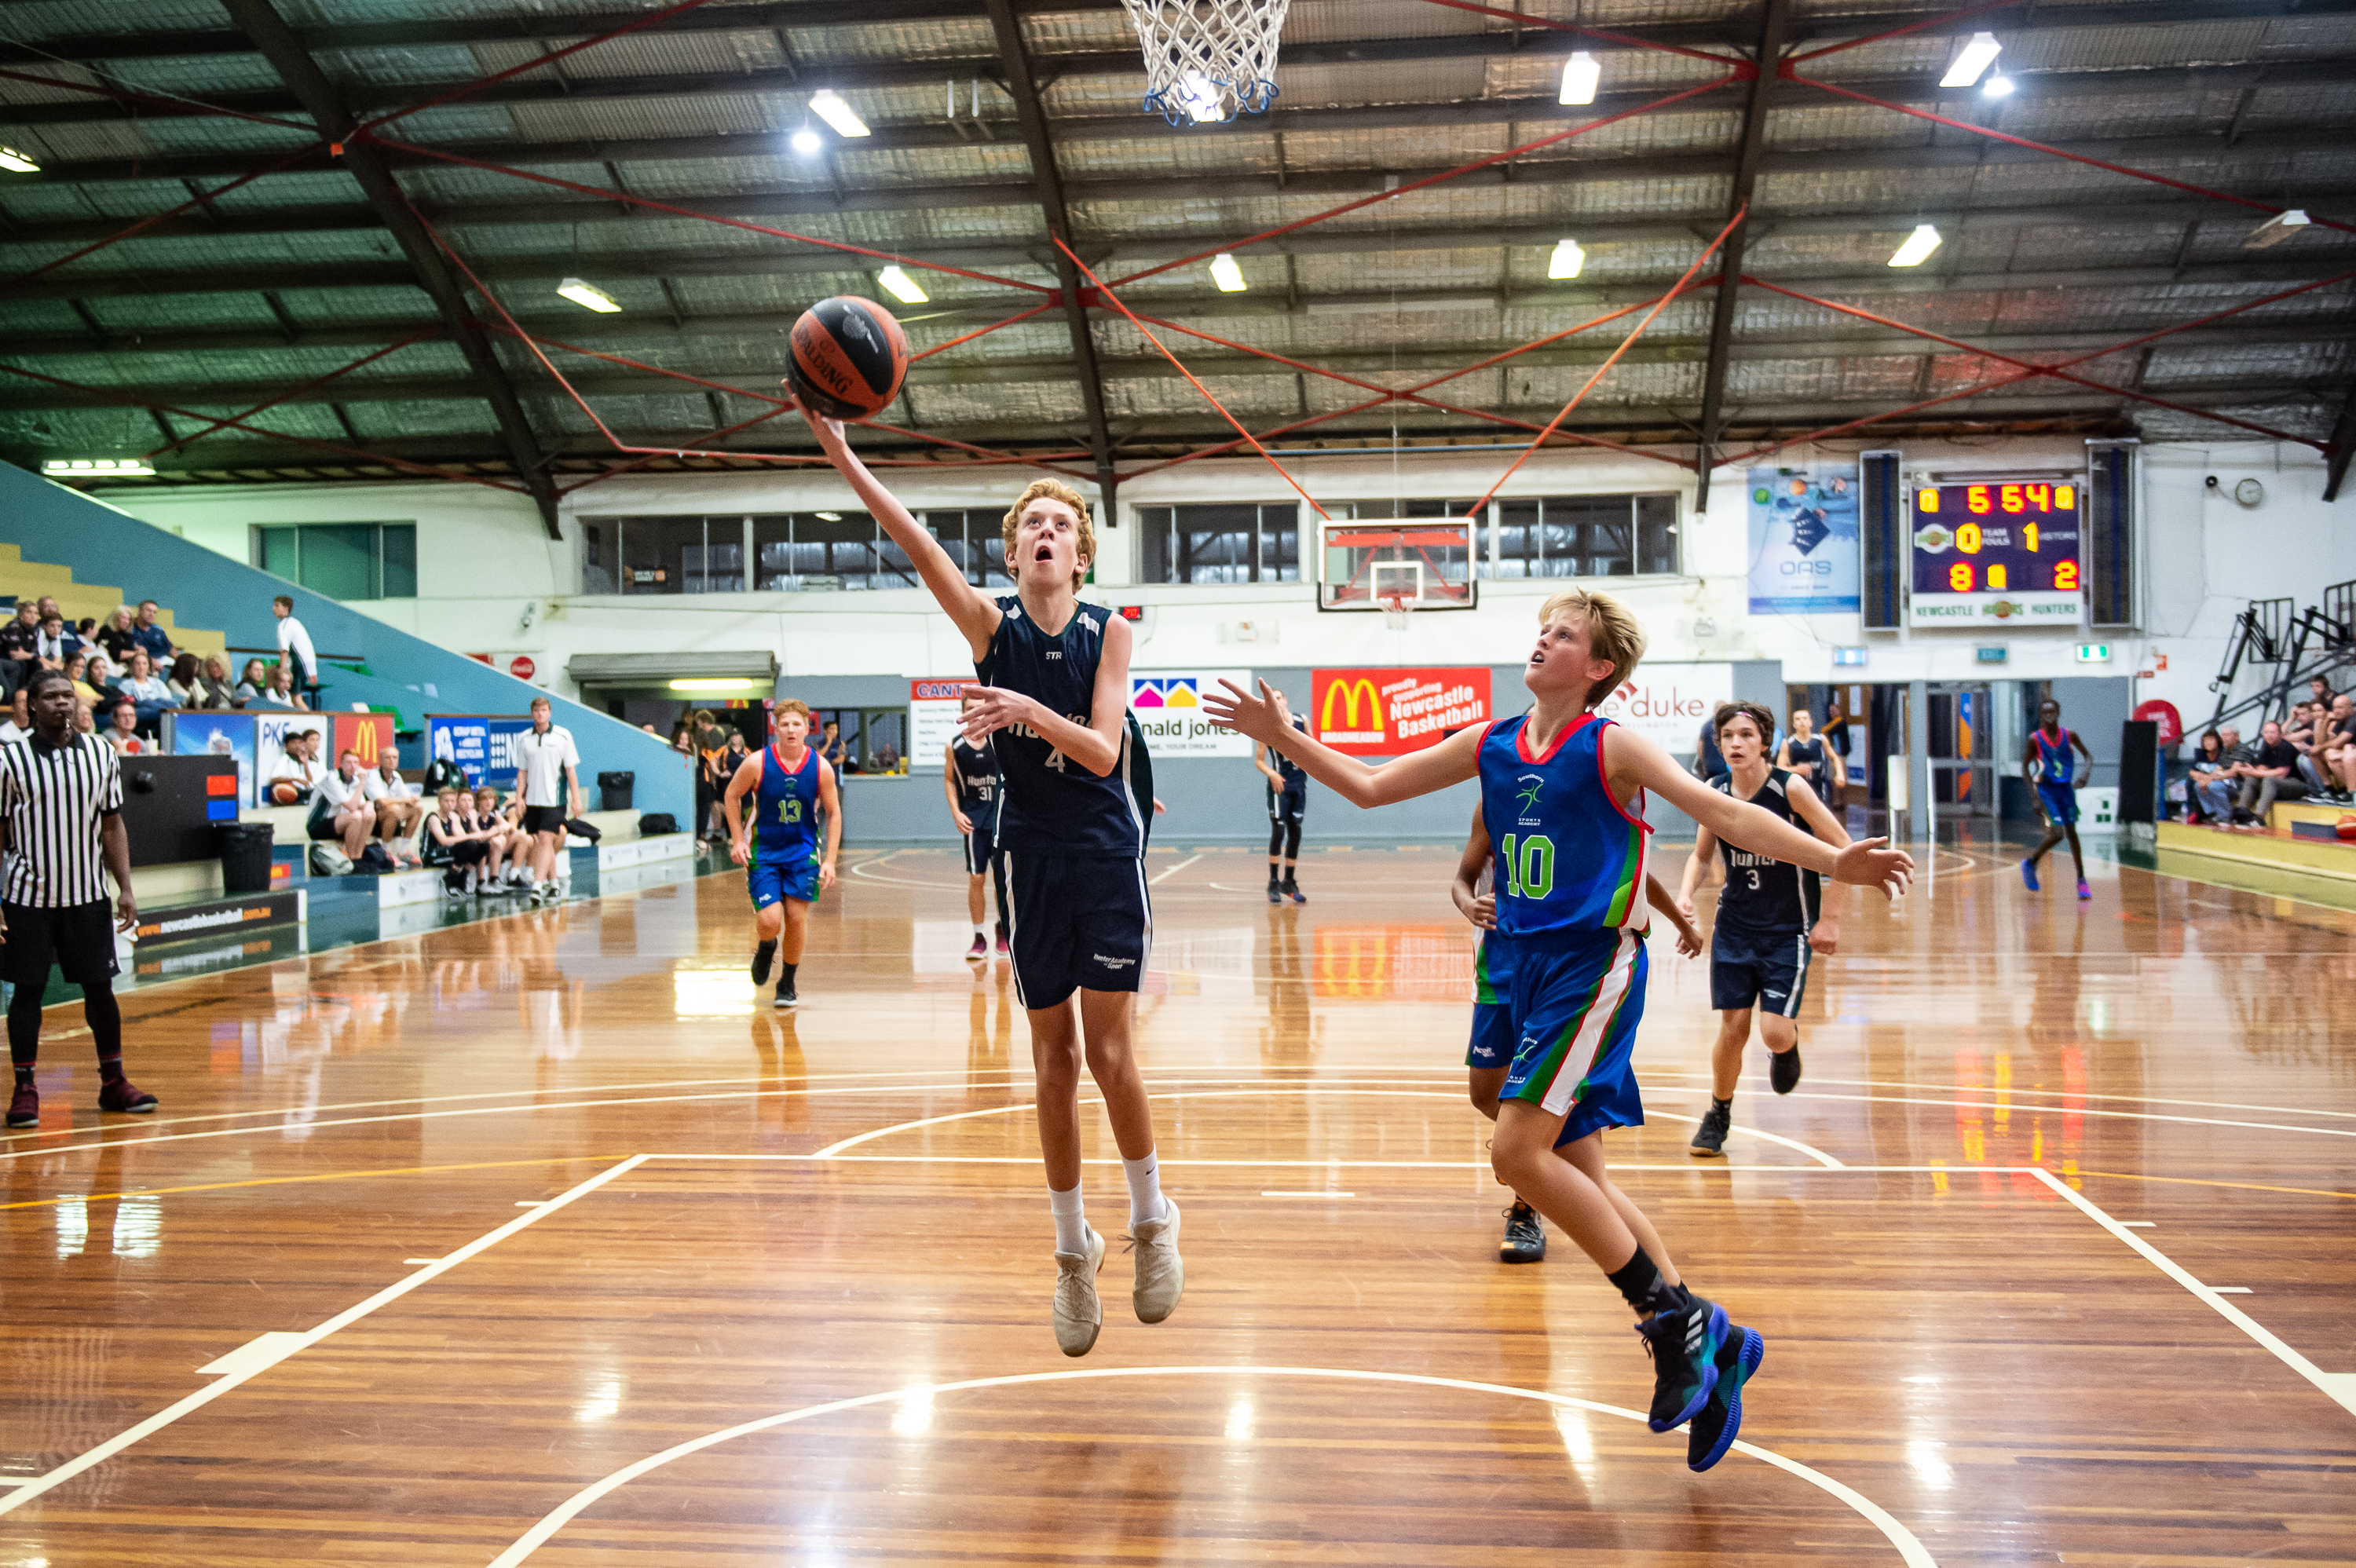 The Hunter Academy of Sport has officially kicked off its 2019/20 season, opening nominations for 7 of their elite development programs for athletes from the Hunter Region.